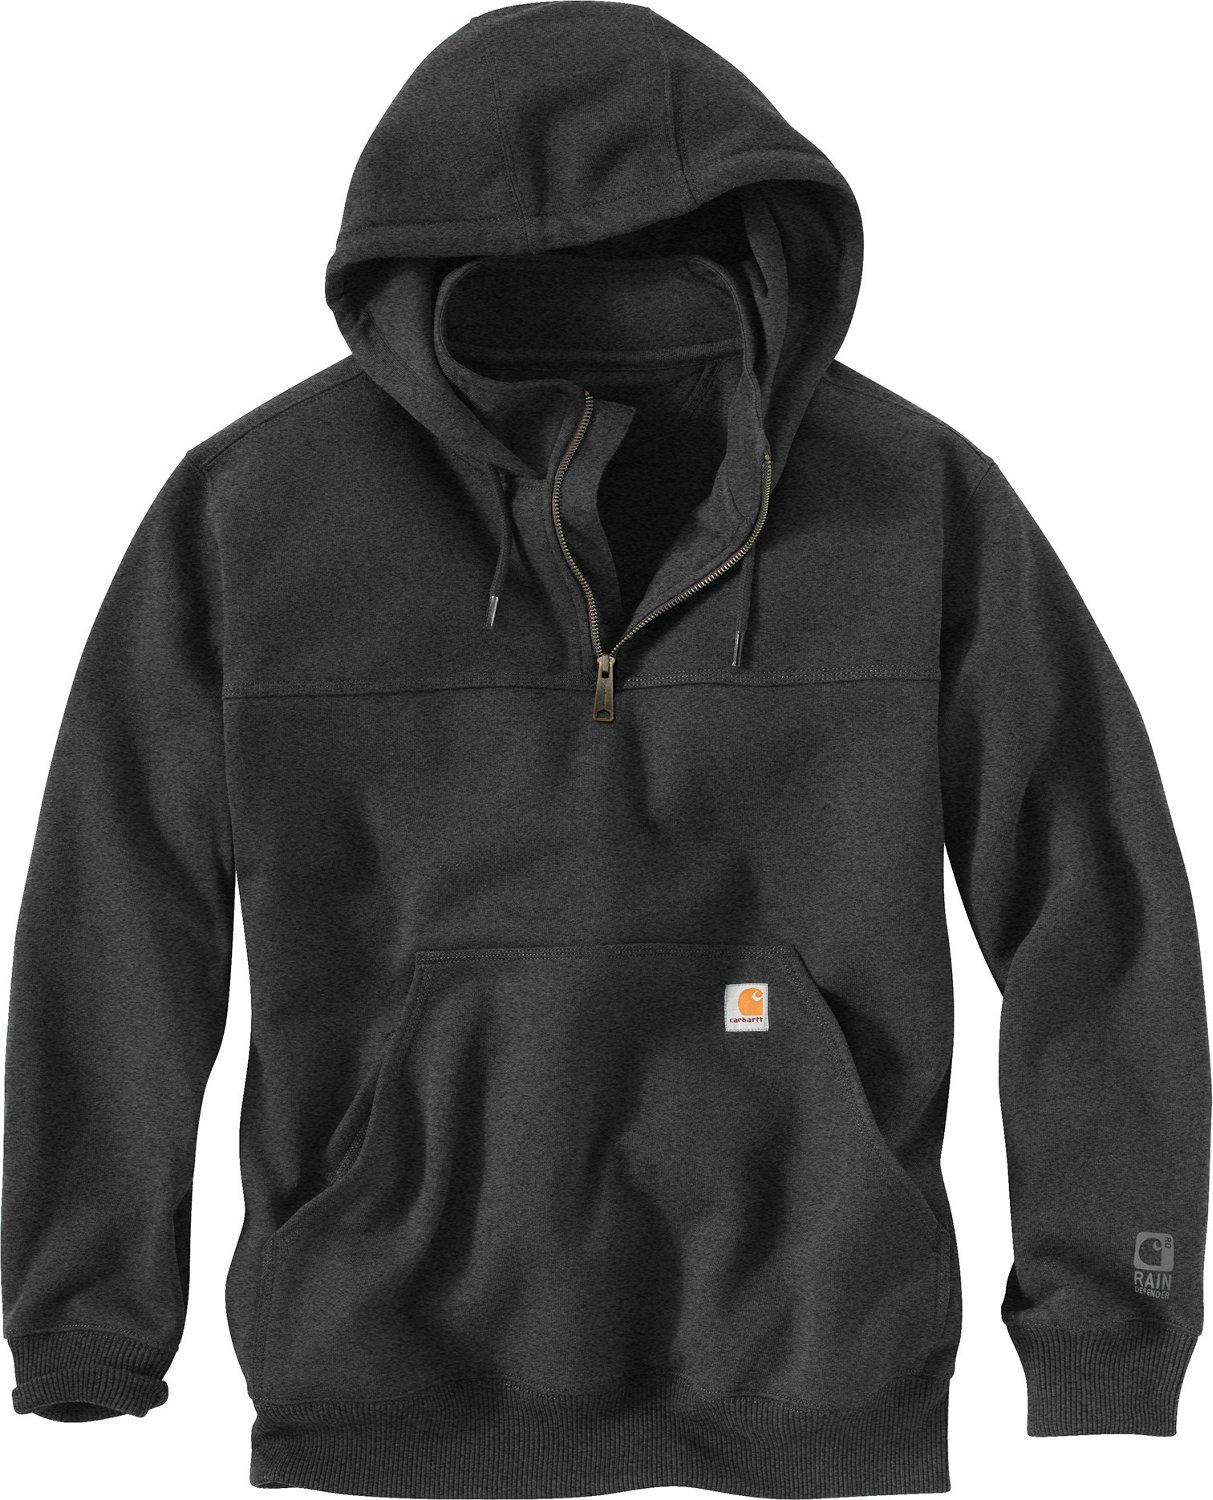 Display product reviews for Carhartt Men s Paxton Heavyweight Hooded Zip  Mock Sweatshirt 26b3bc943f80e